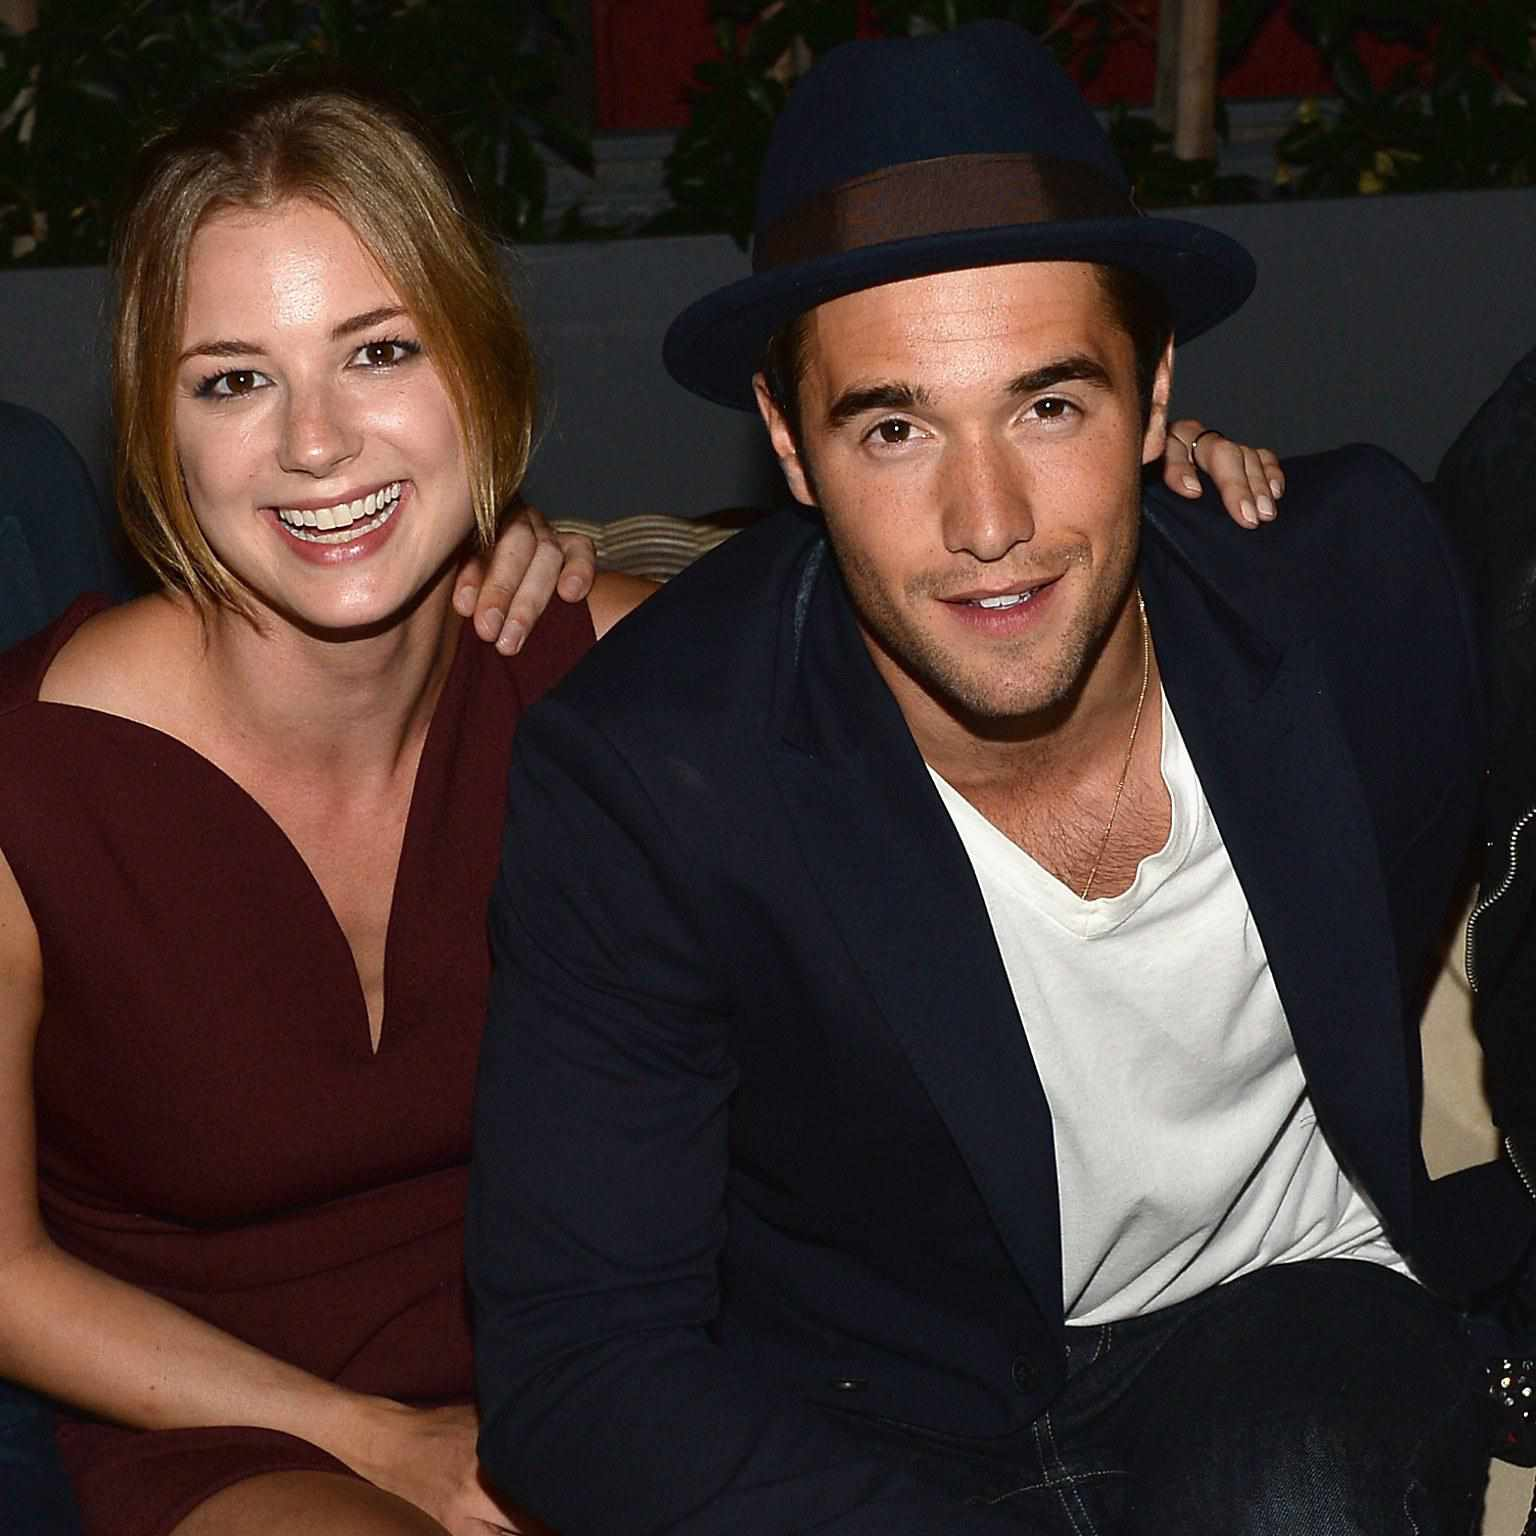 are emily and daniel from revenge still dating in real life